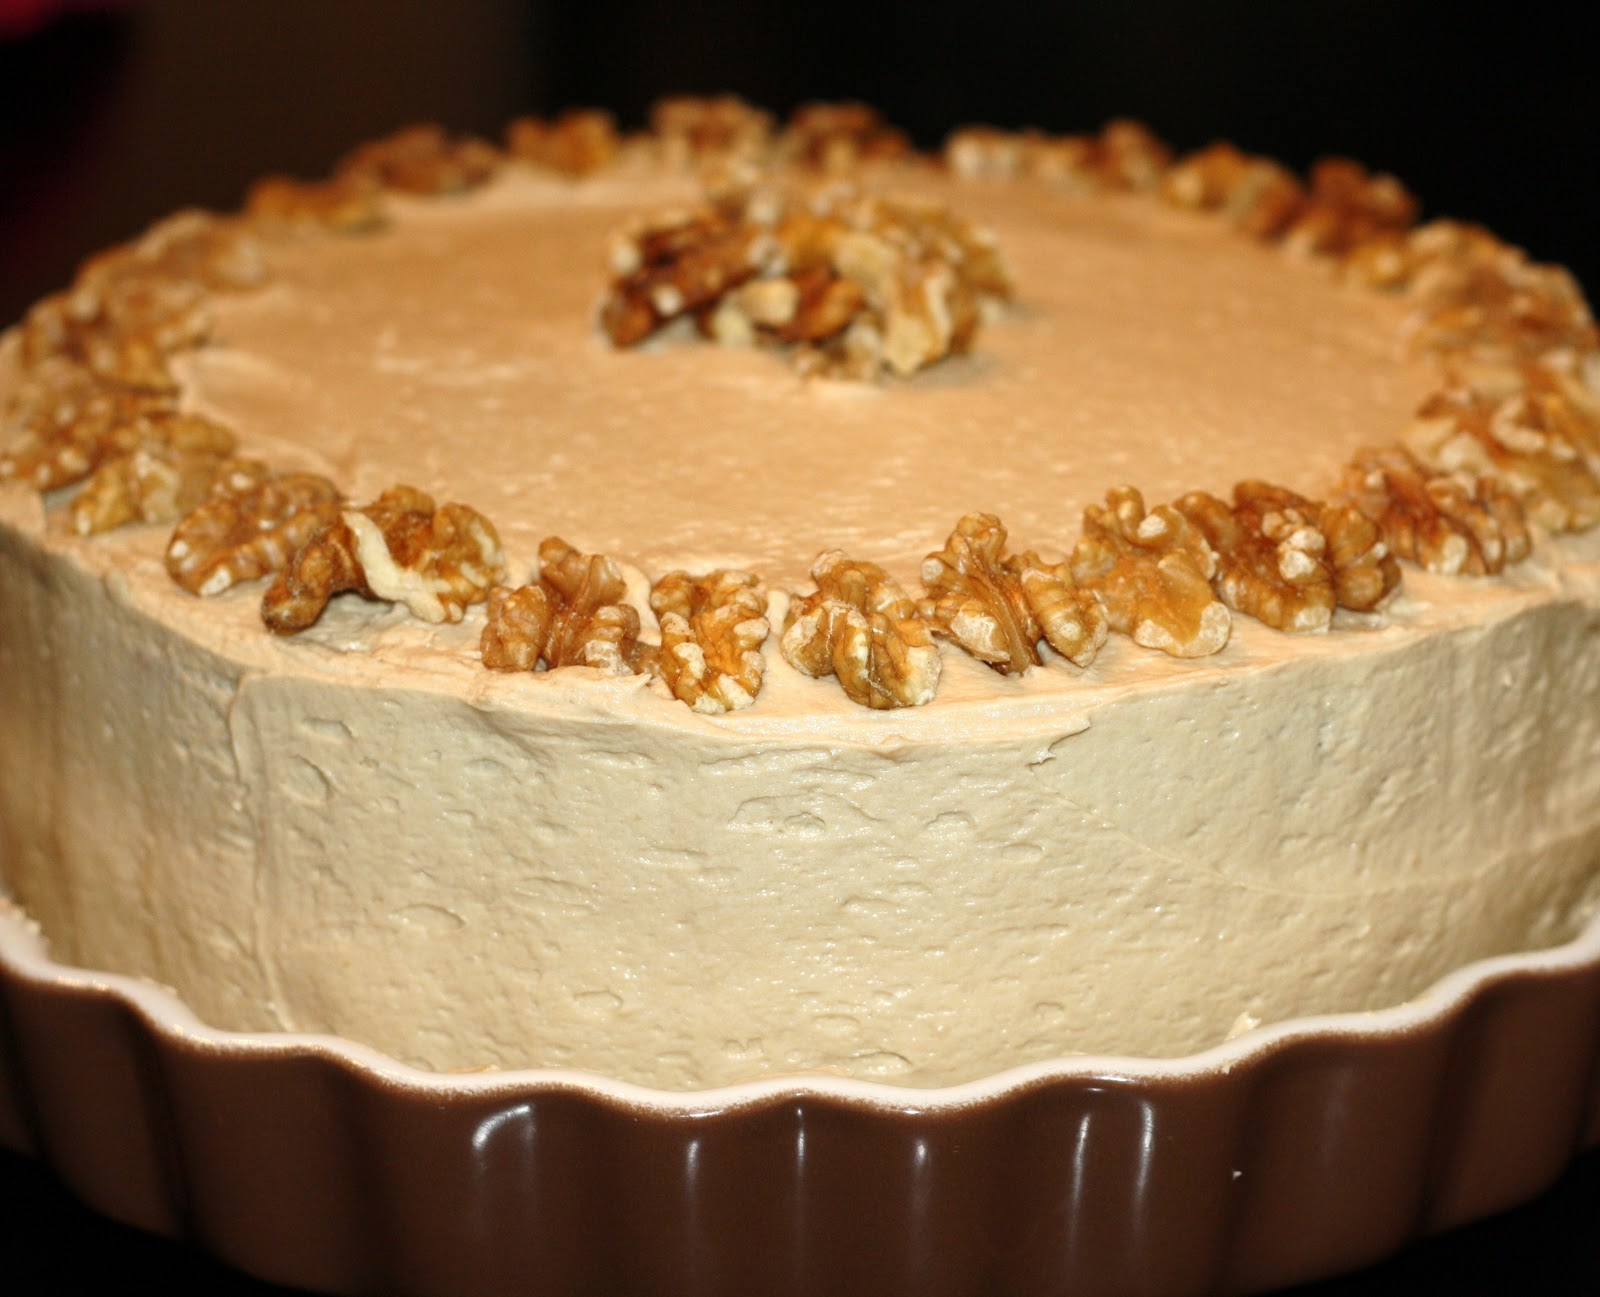 sunday sweets: maple-walnut cake with brown-sugar frosting